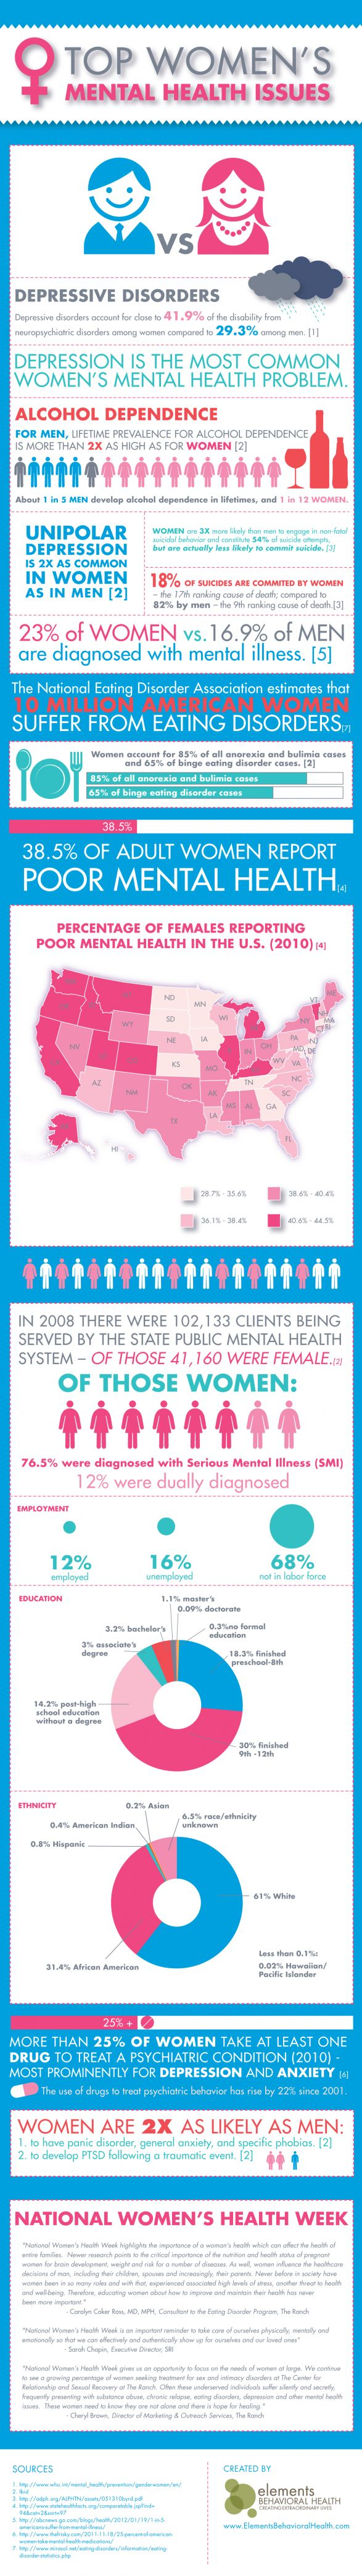 The unique challenges women face when it comes to mental health, including eating disorders, depression, & panic disorder.